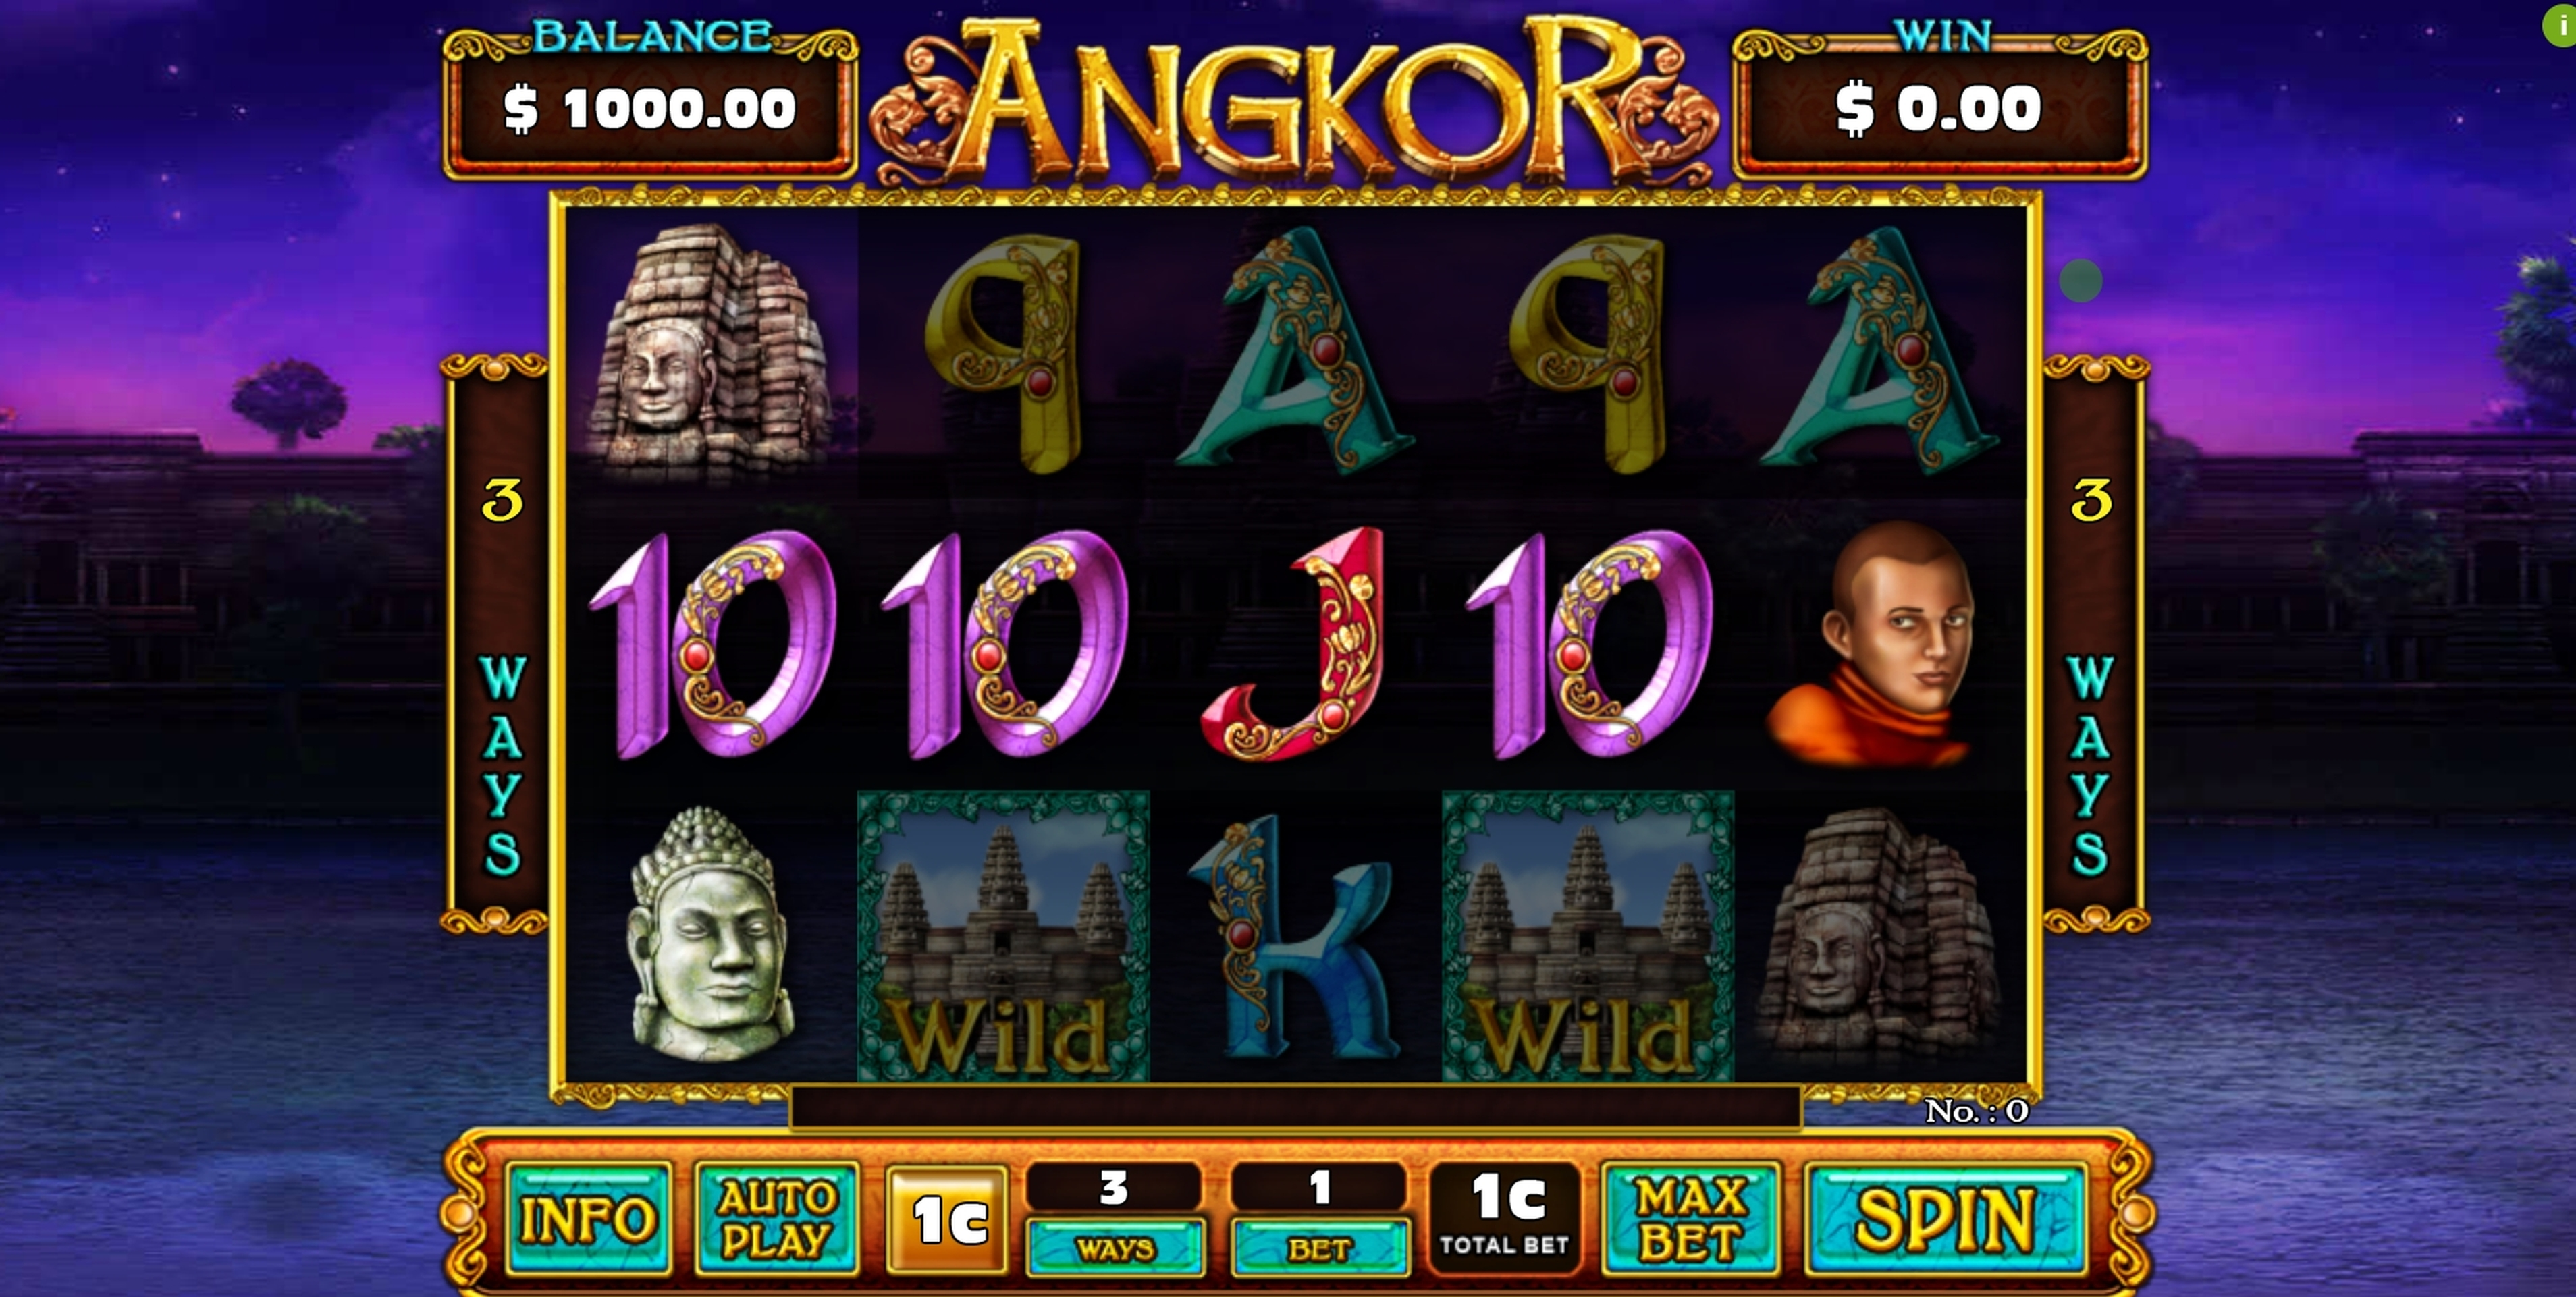 Reels in Angkor Slot Game by GMW